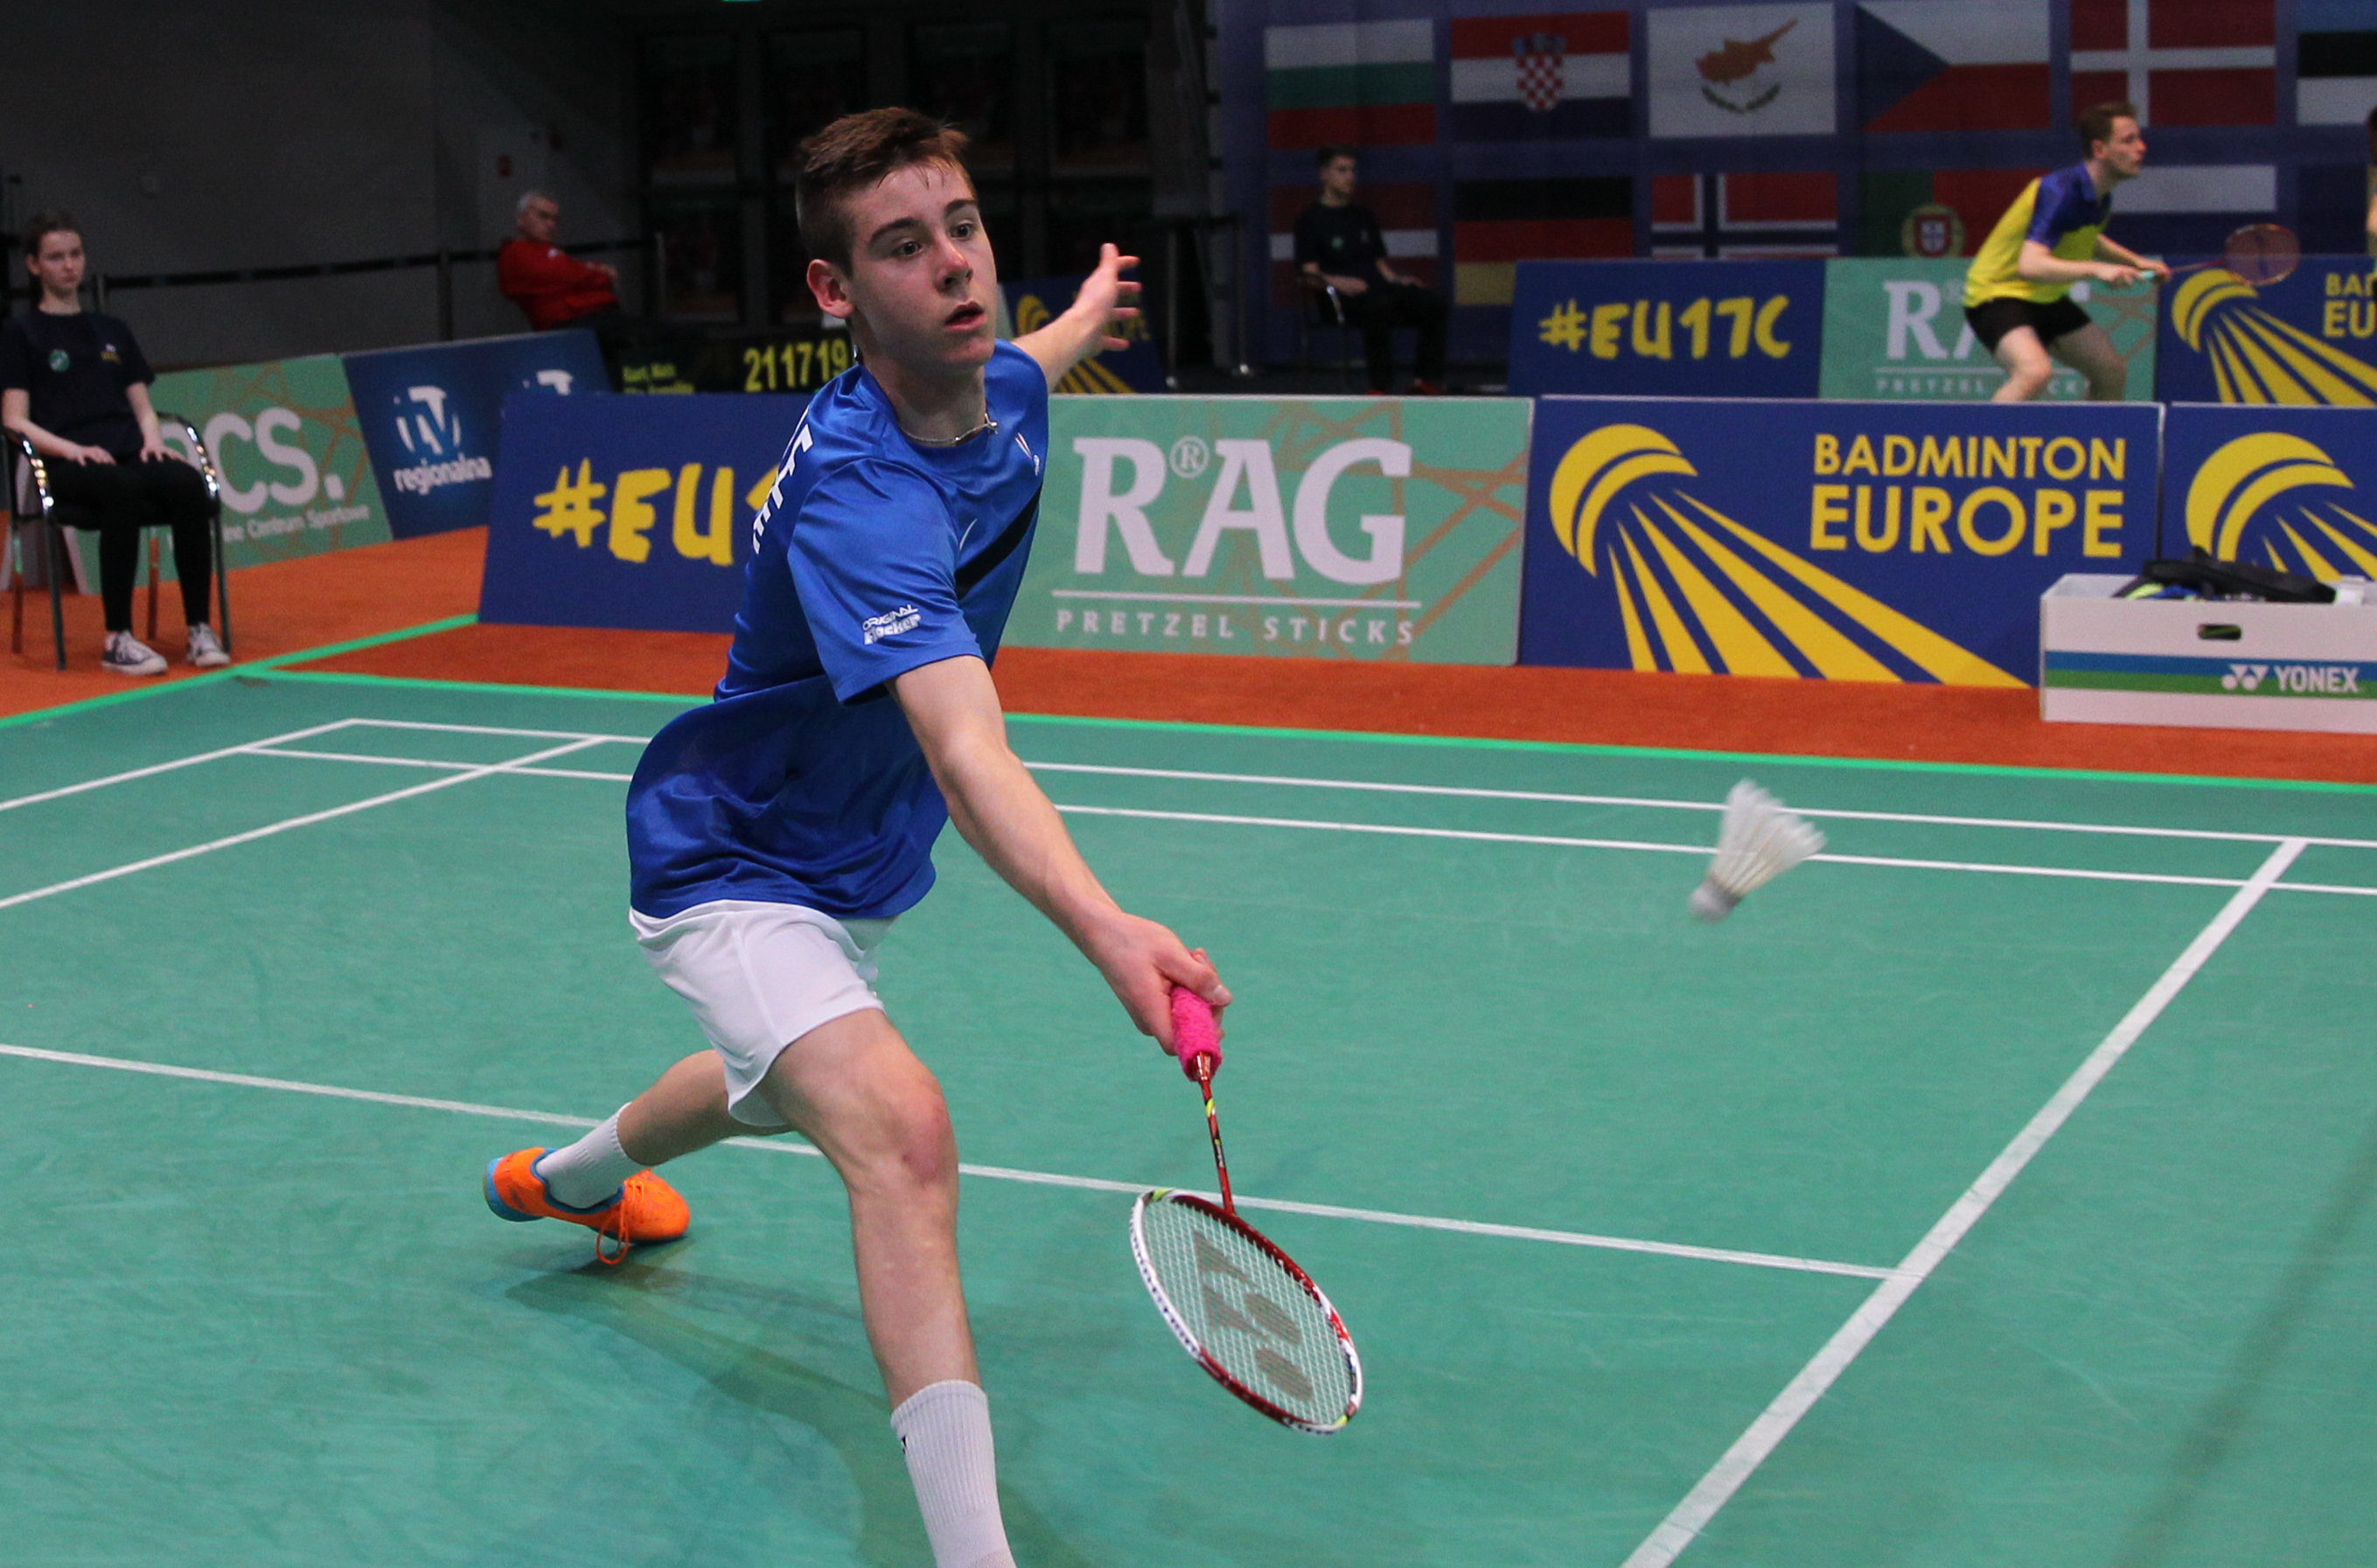 Young French dip toes in senior water Badmintoneurope